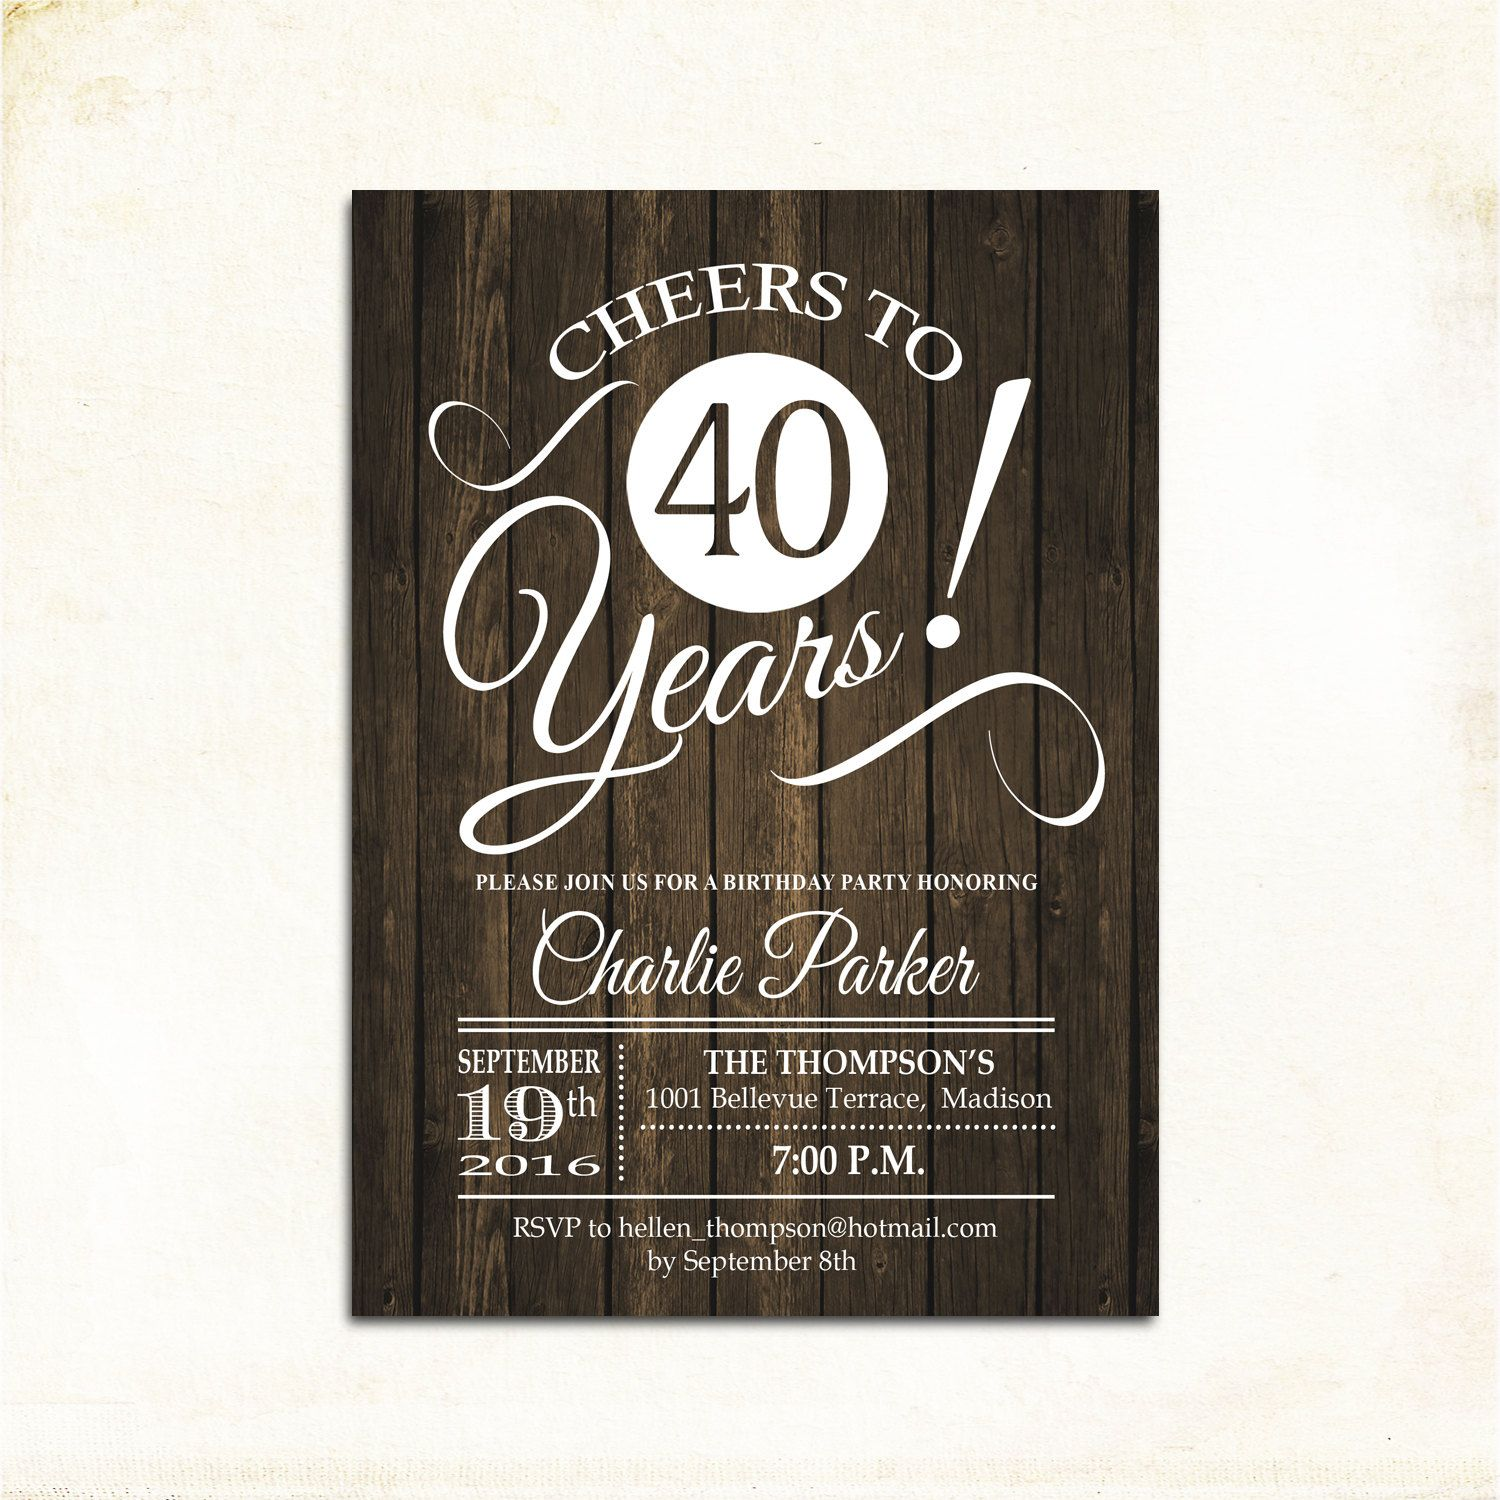 Chalkboard Save the Date - 40th Birthday Invitation | Fonts ...